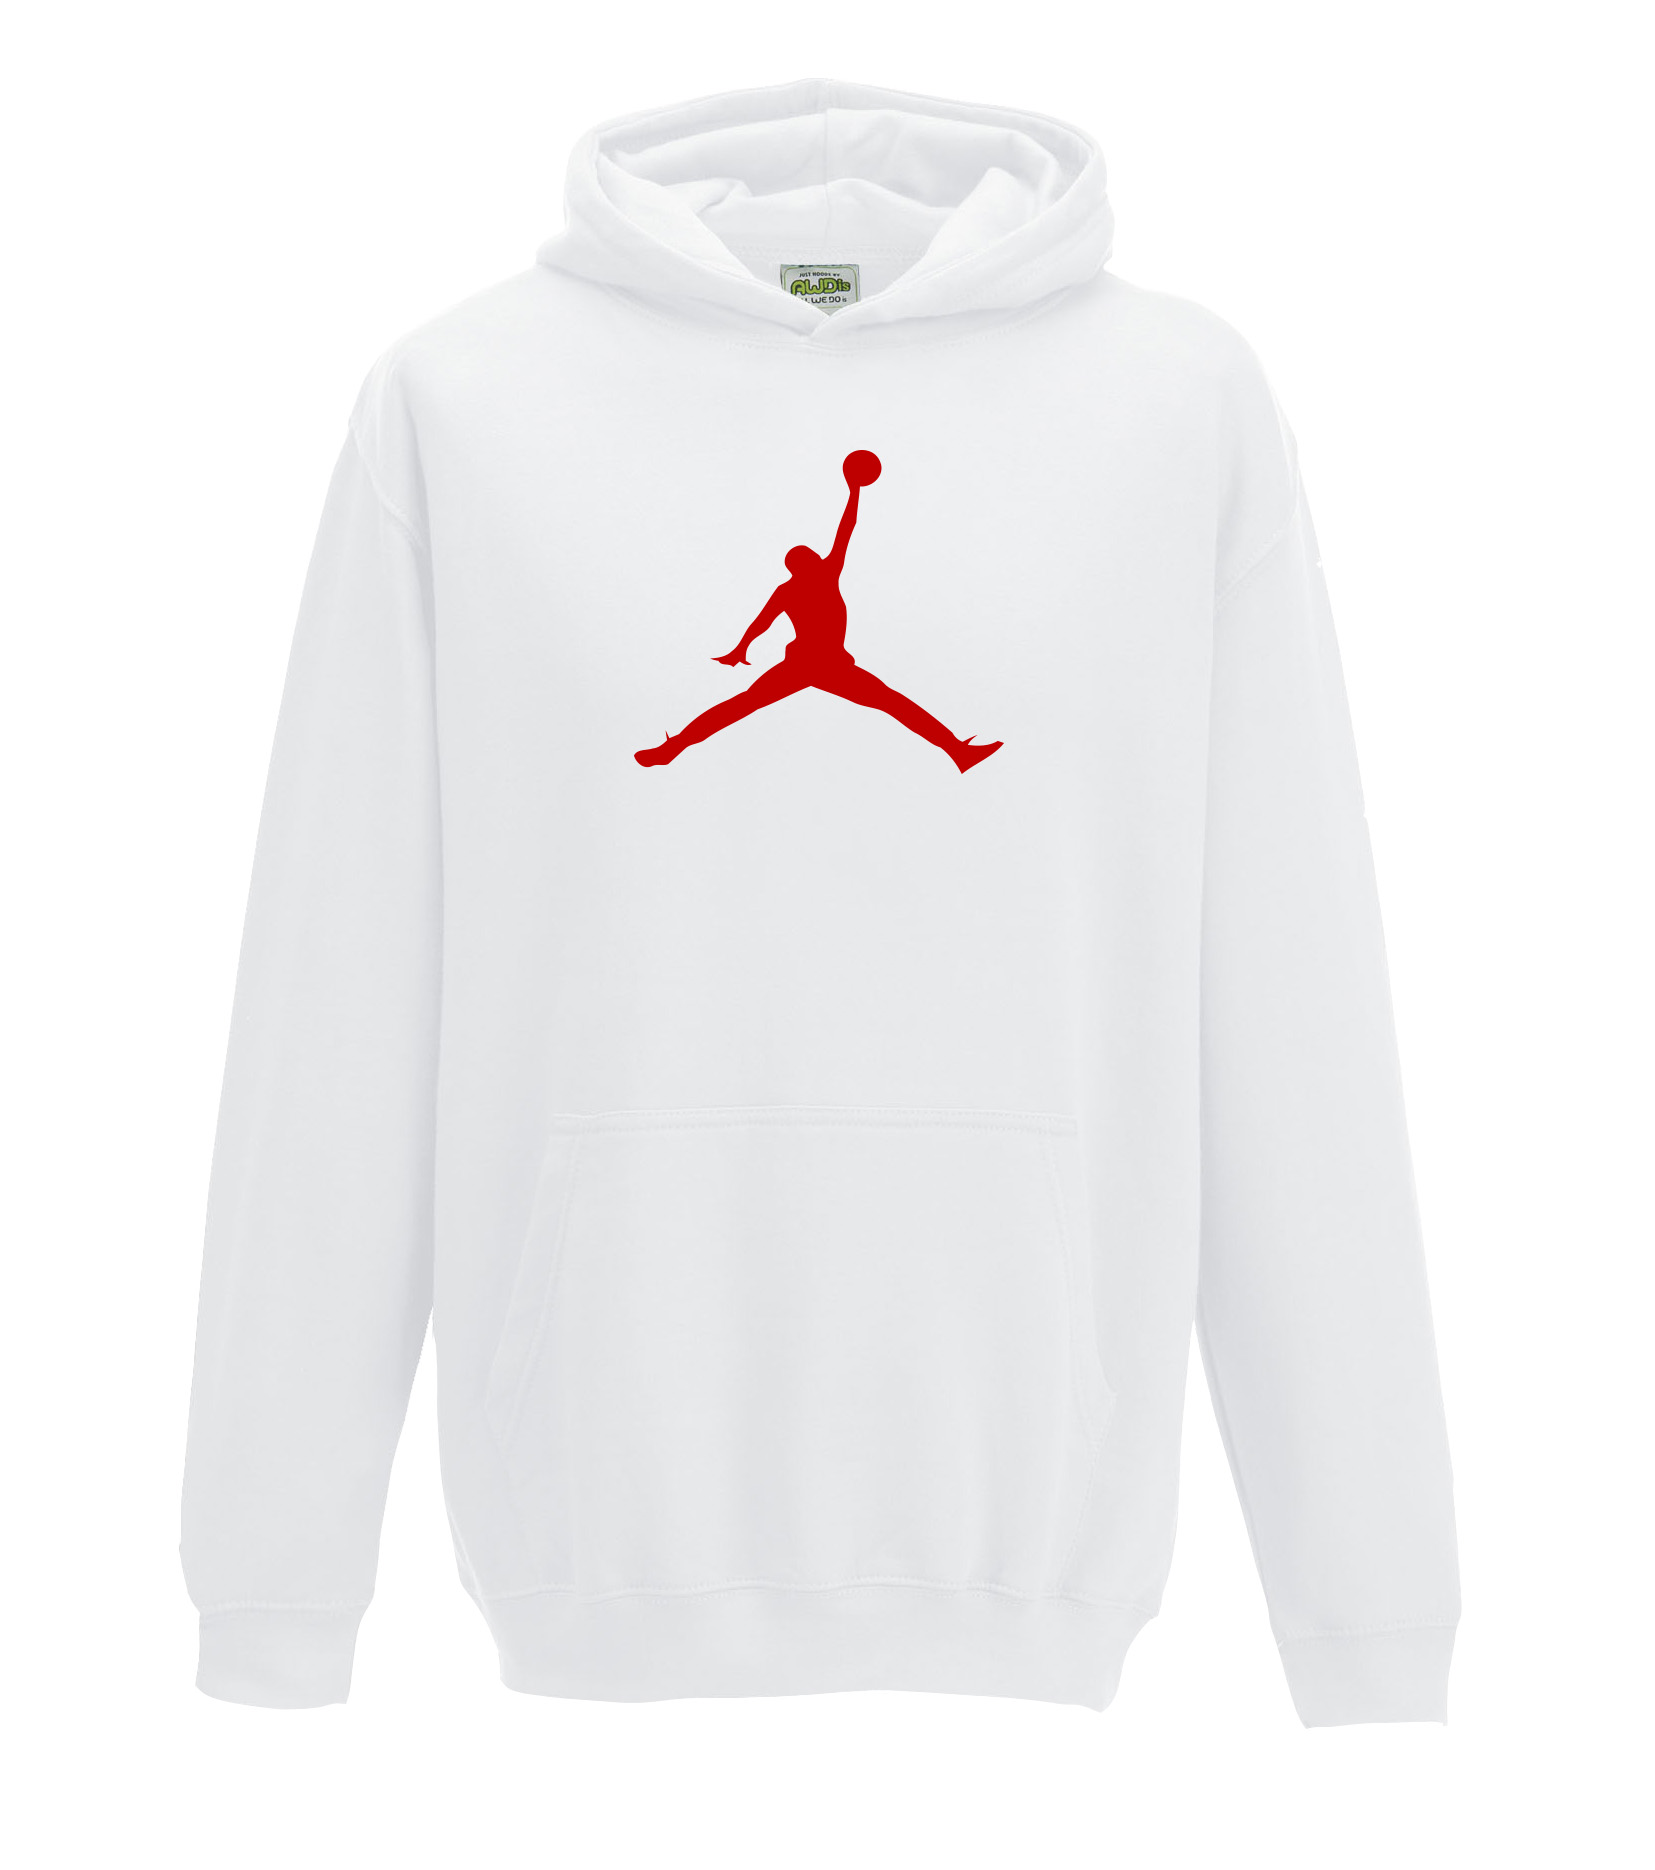 Air Jordan Clothes For Womens a81ff93b2a